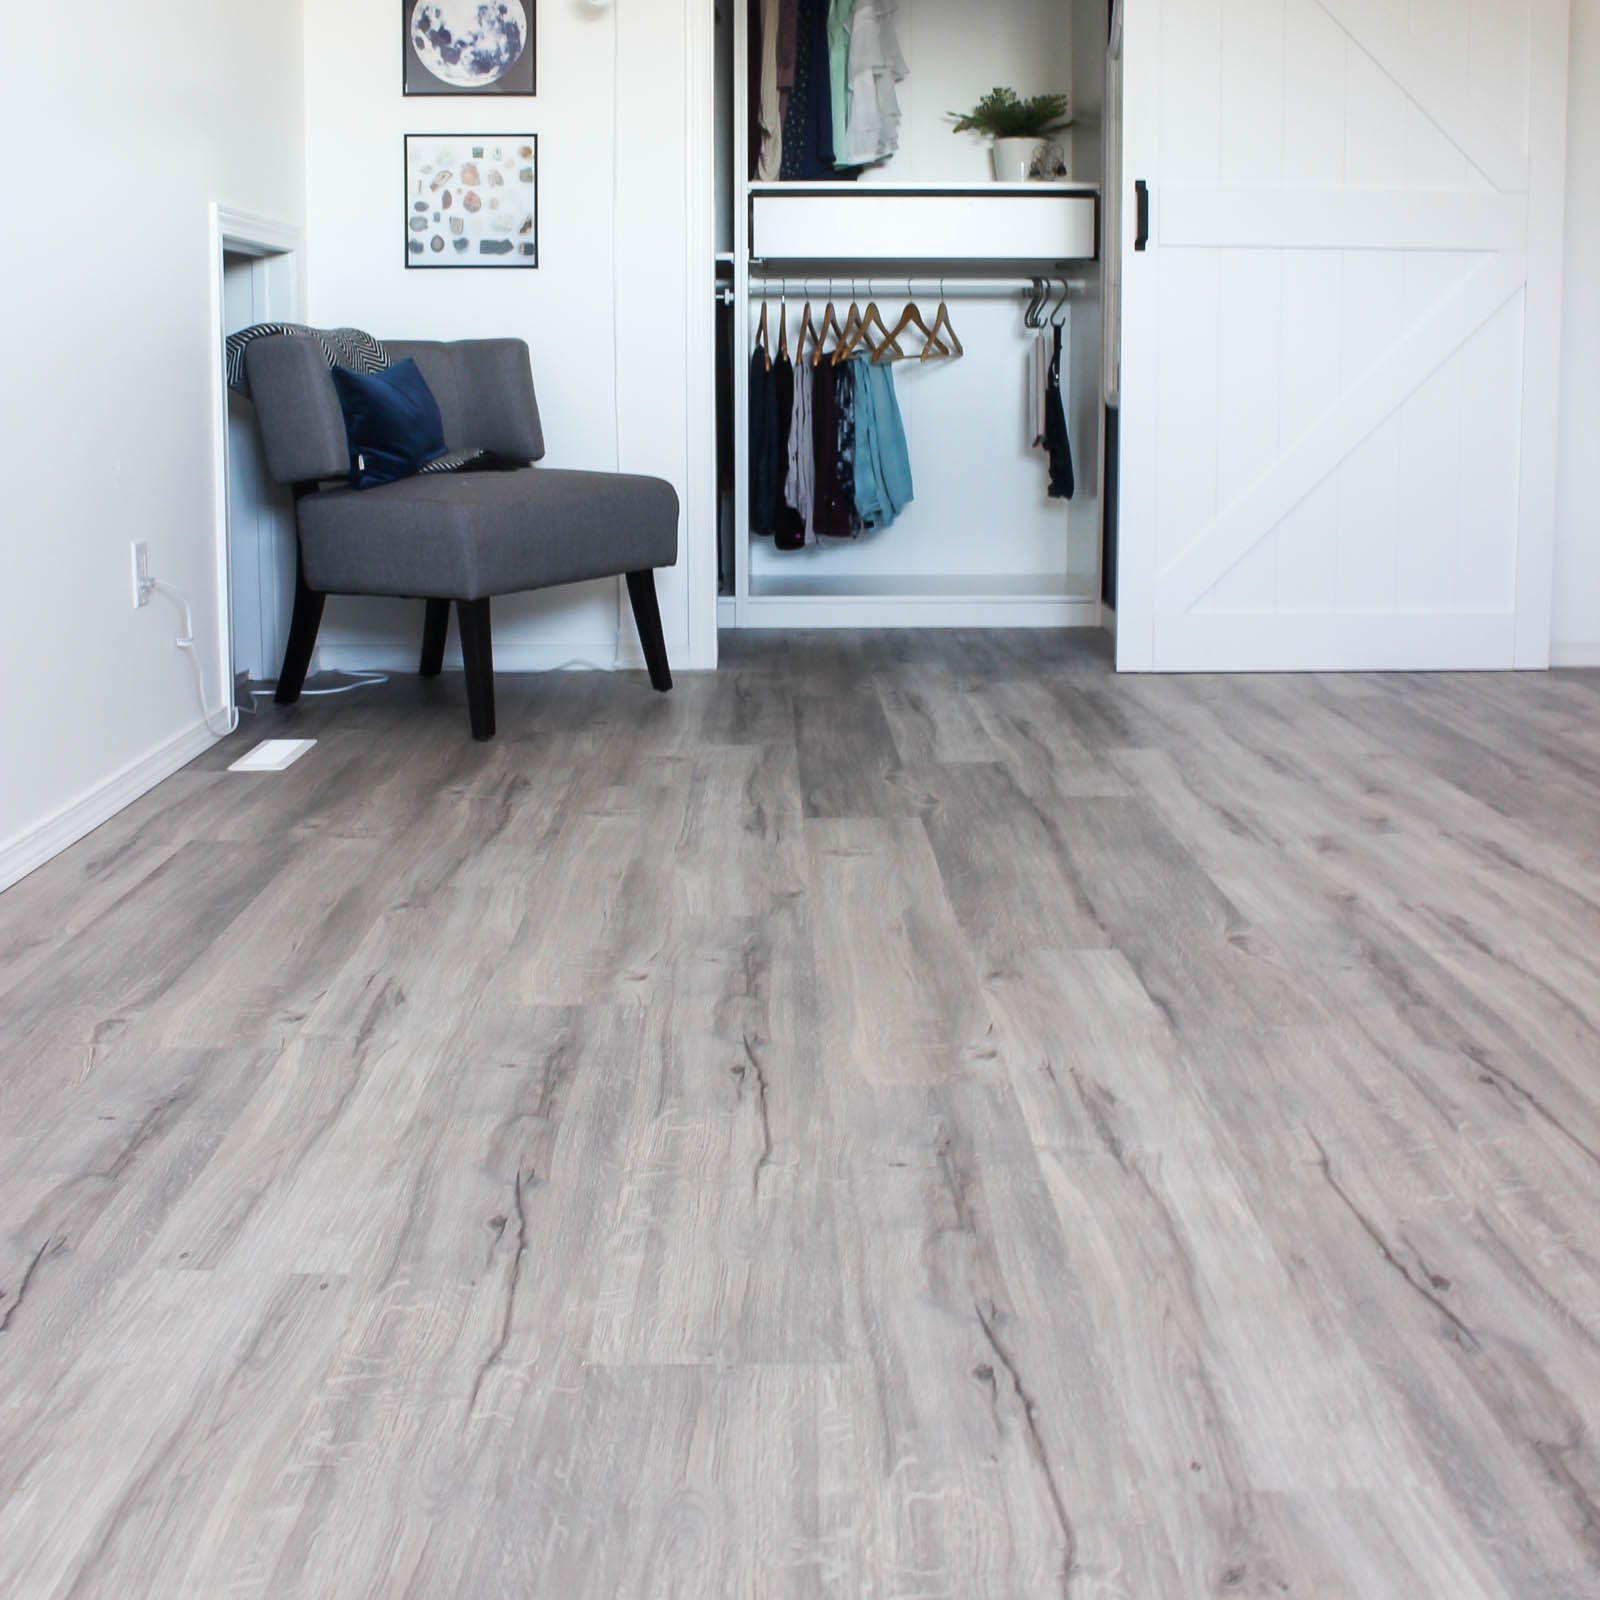 An easy step-by-step guide to installing vinyl plank flooring! A